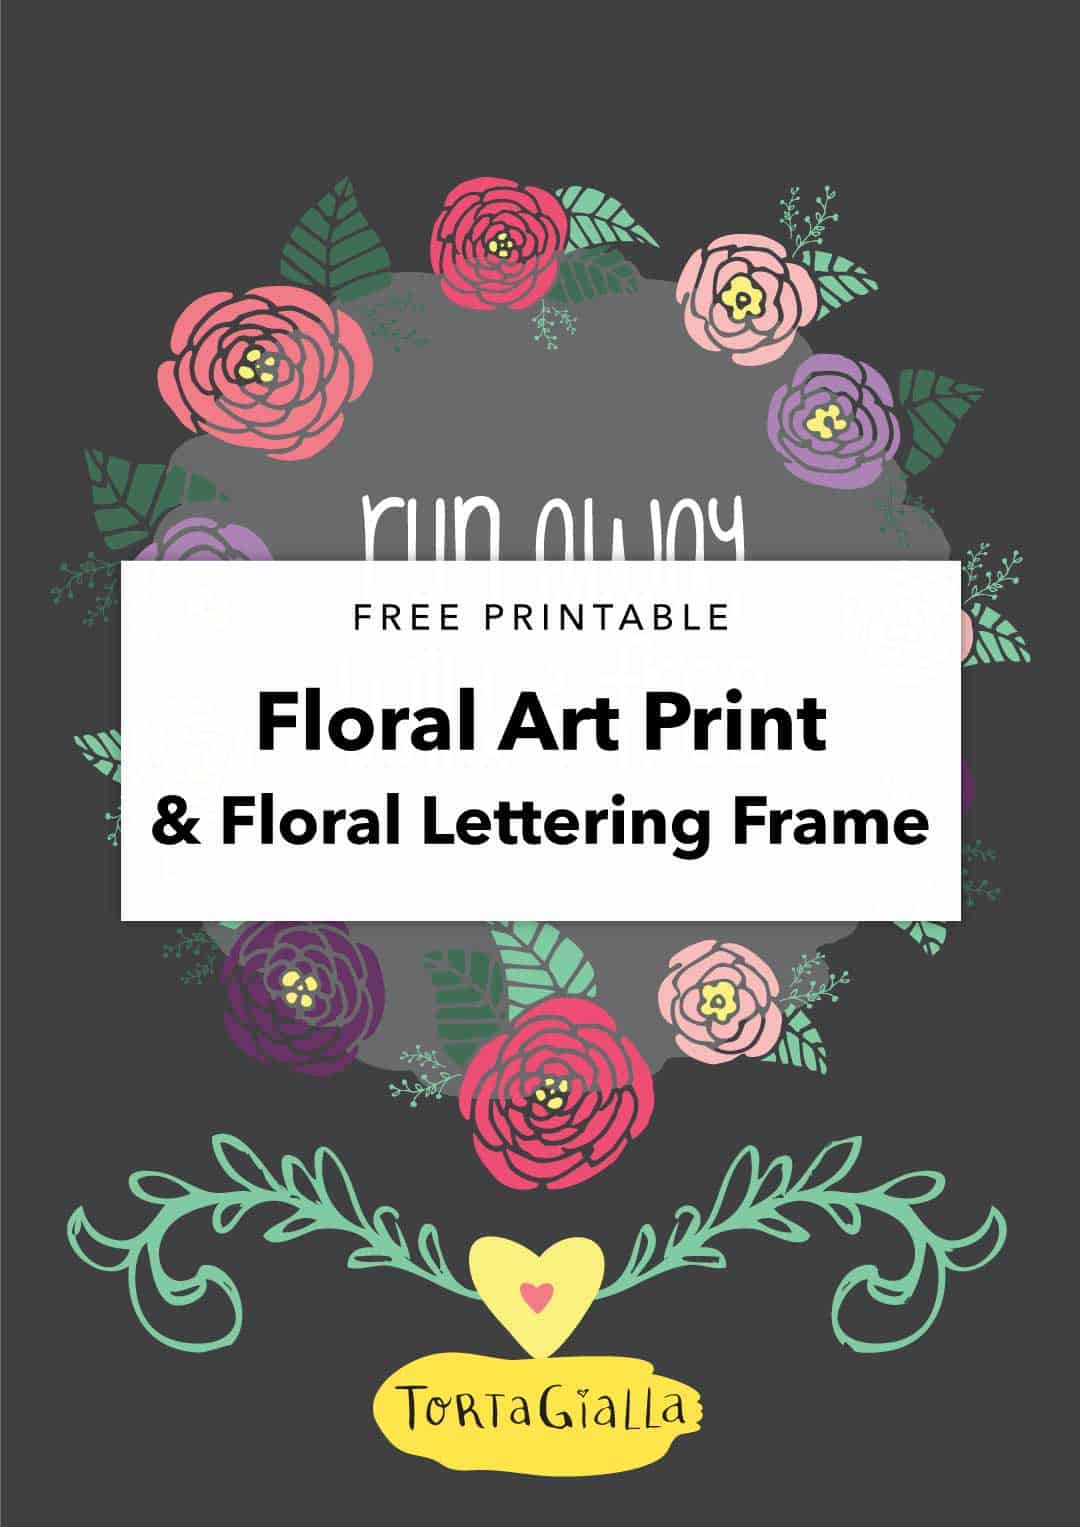 Looking for printable colored flowers? Check out this floral art printable that can be used as home decor for kids and nursery walls!